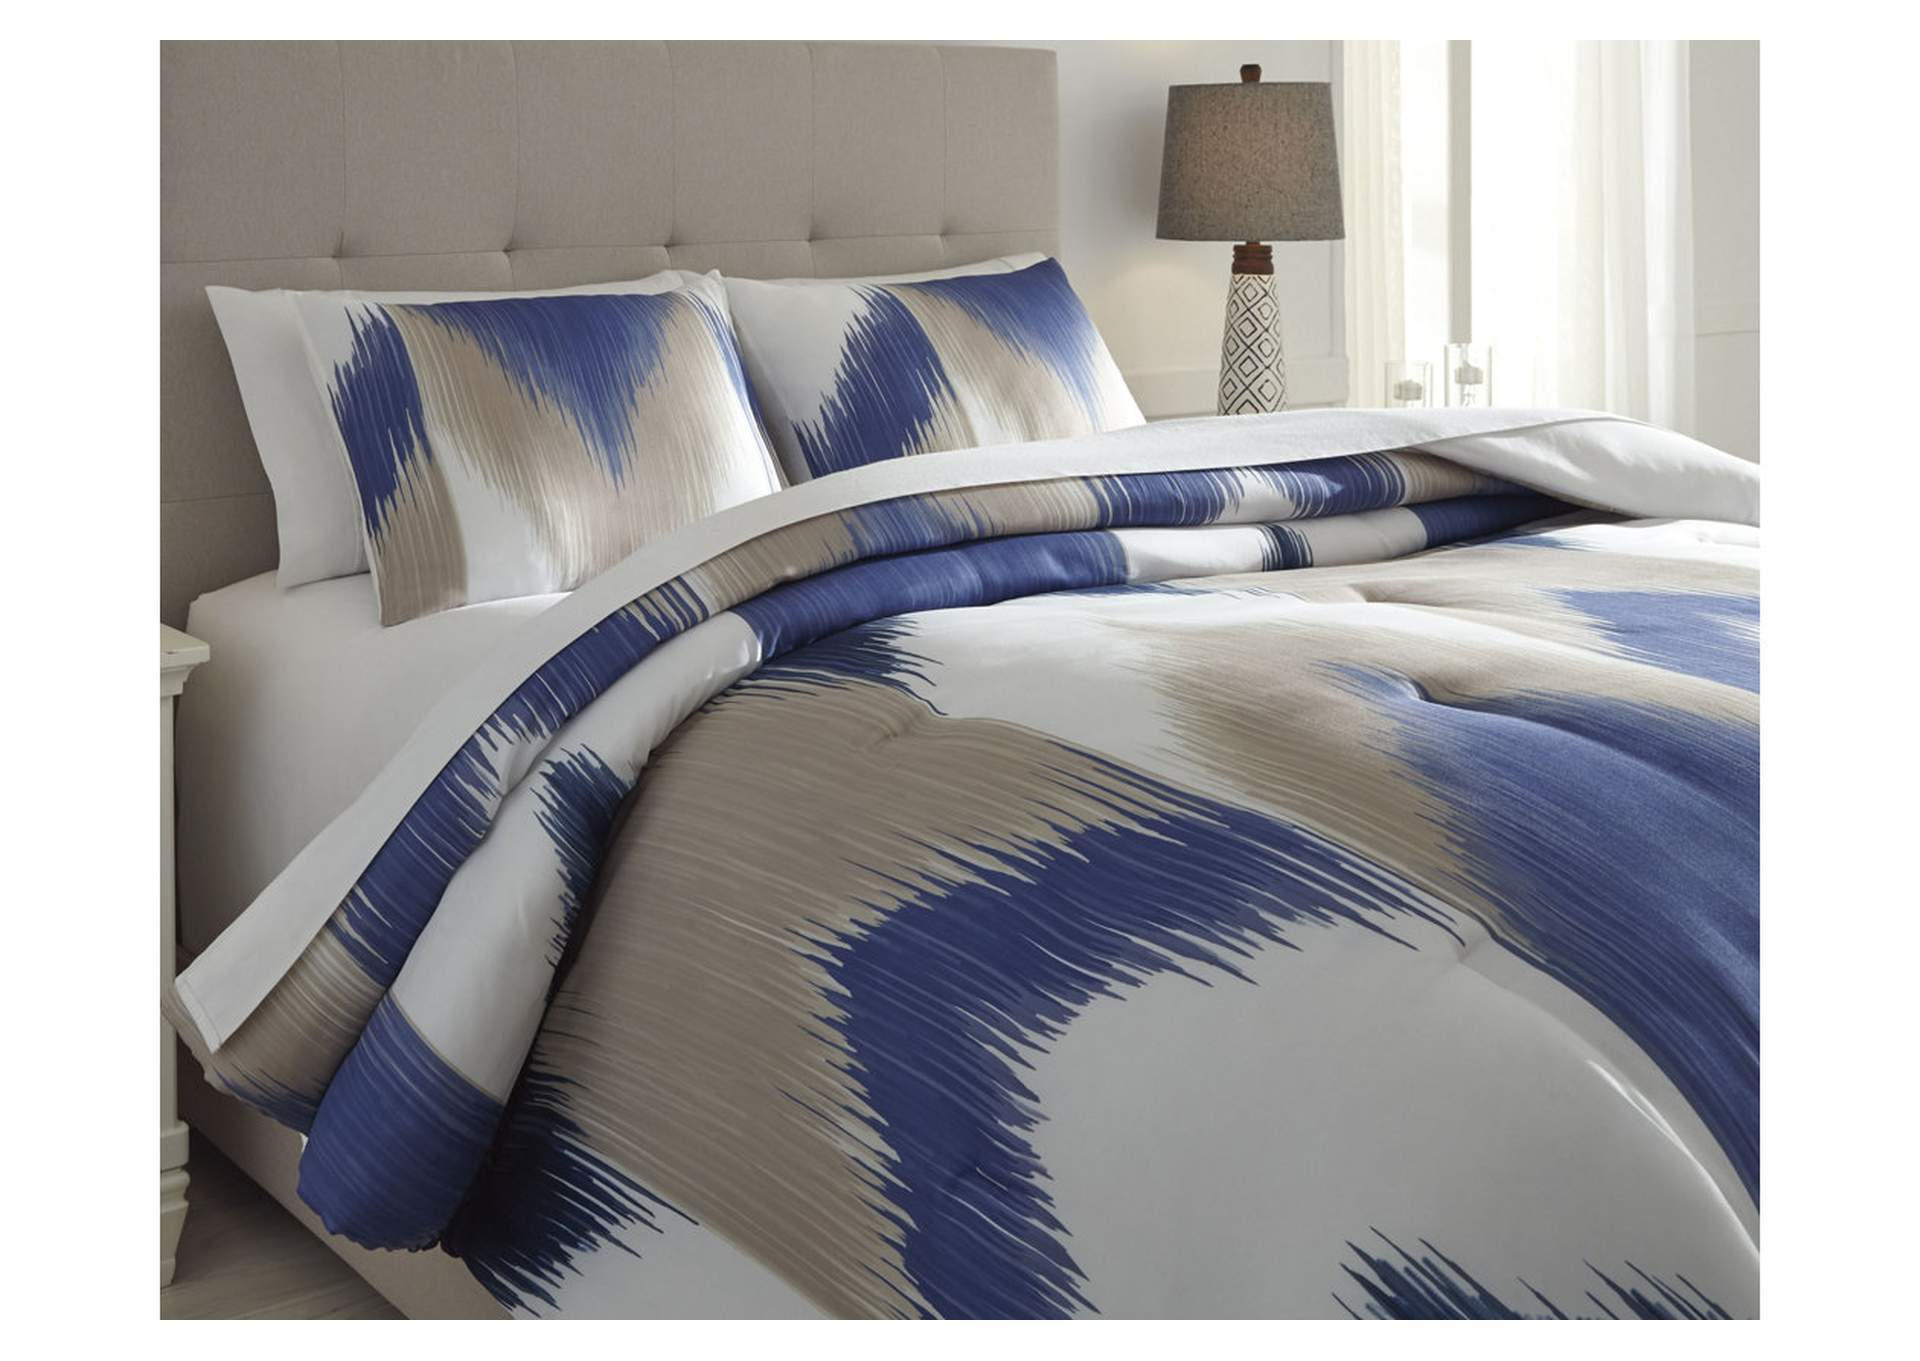 Mayda Blue/Off White King Comforter Set,Signature Design By Ashley